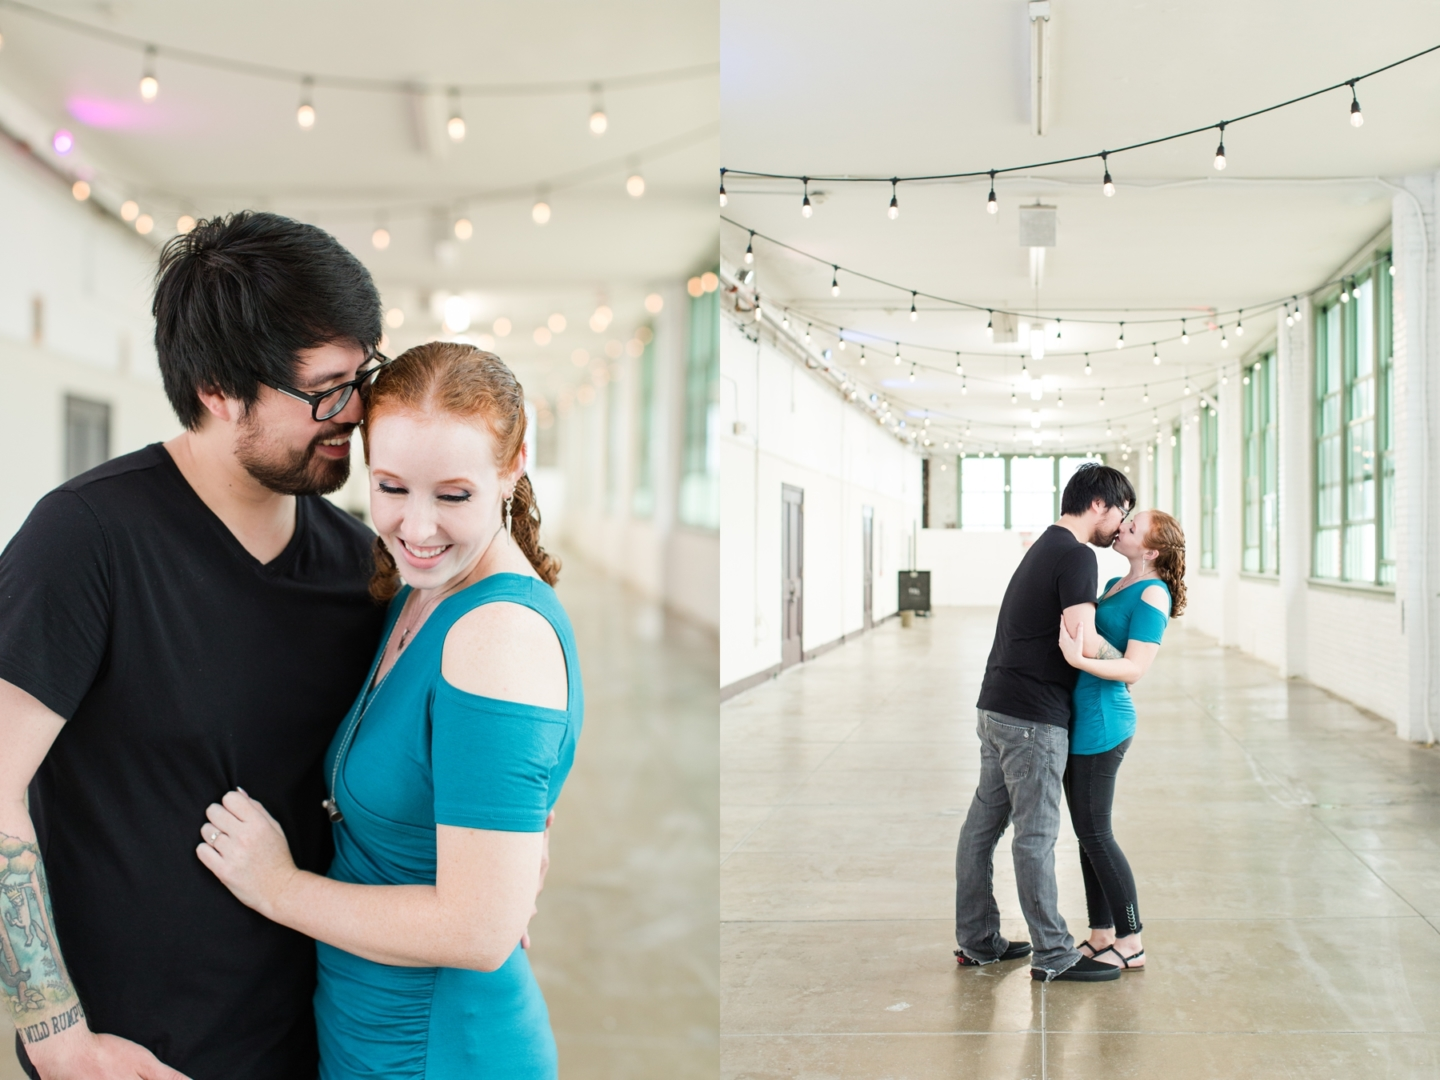 Seanna + Zac Engagement Photos on Asbury Park Boardwalk